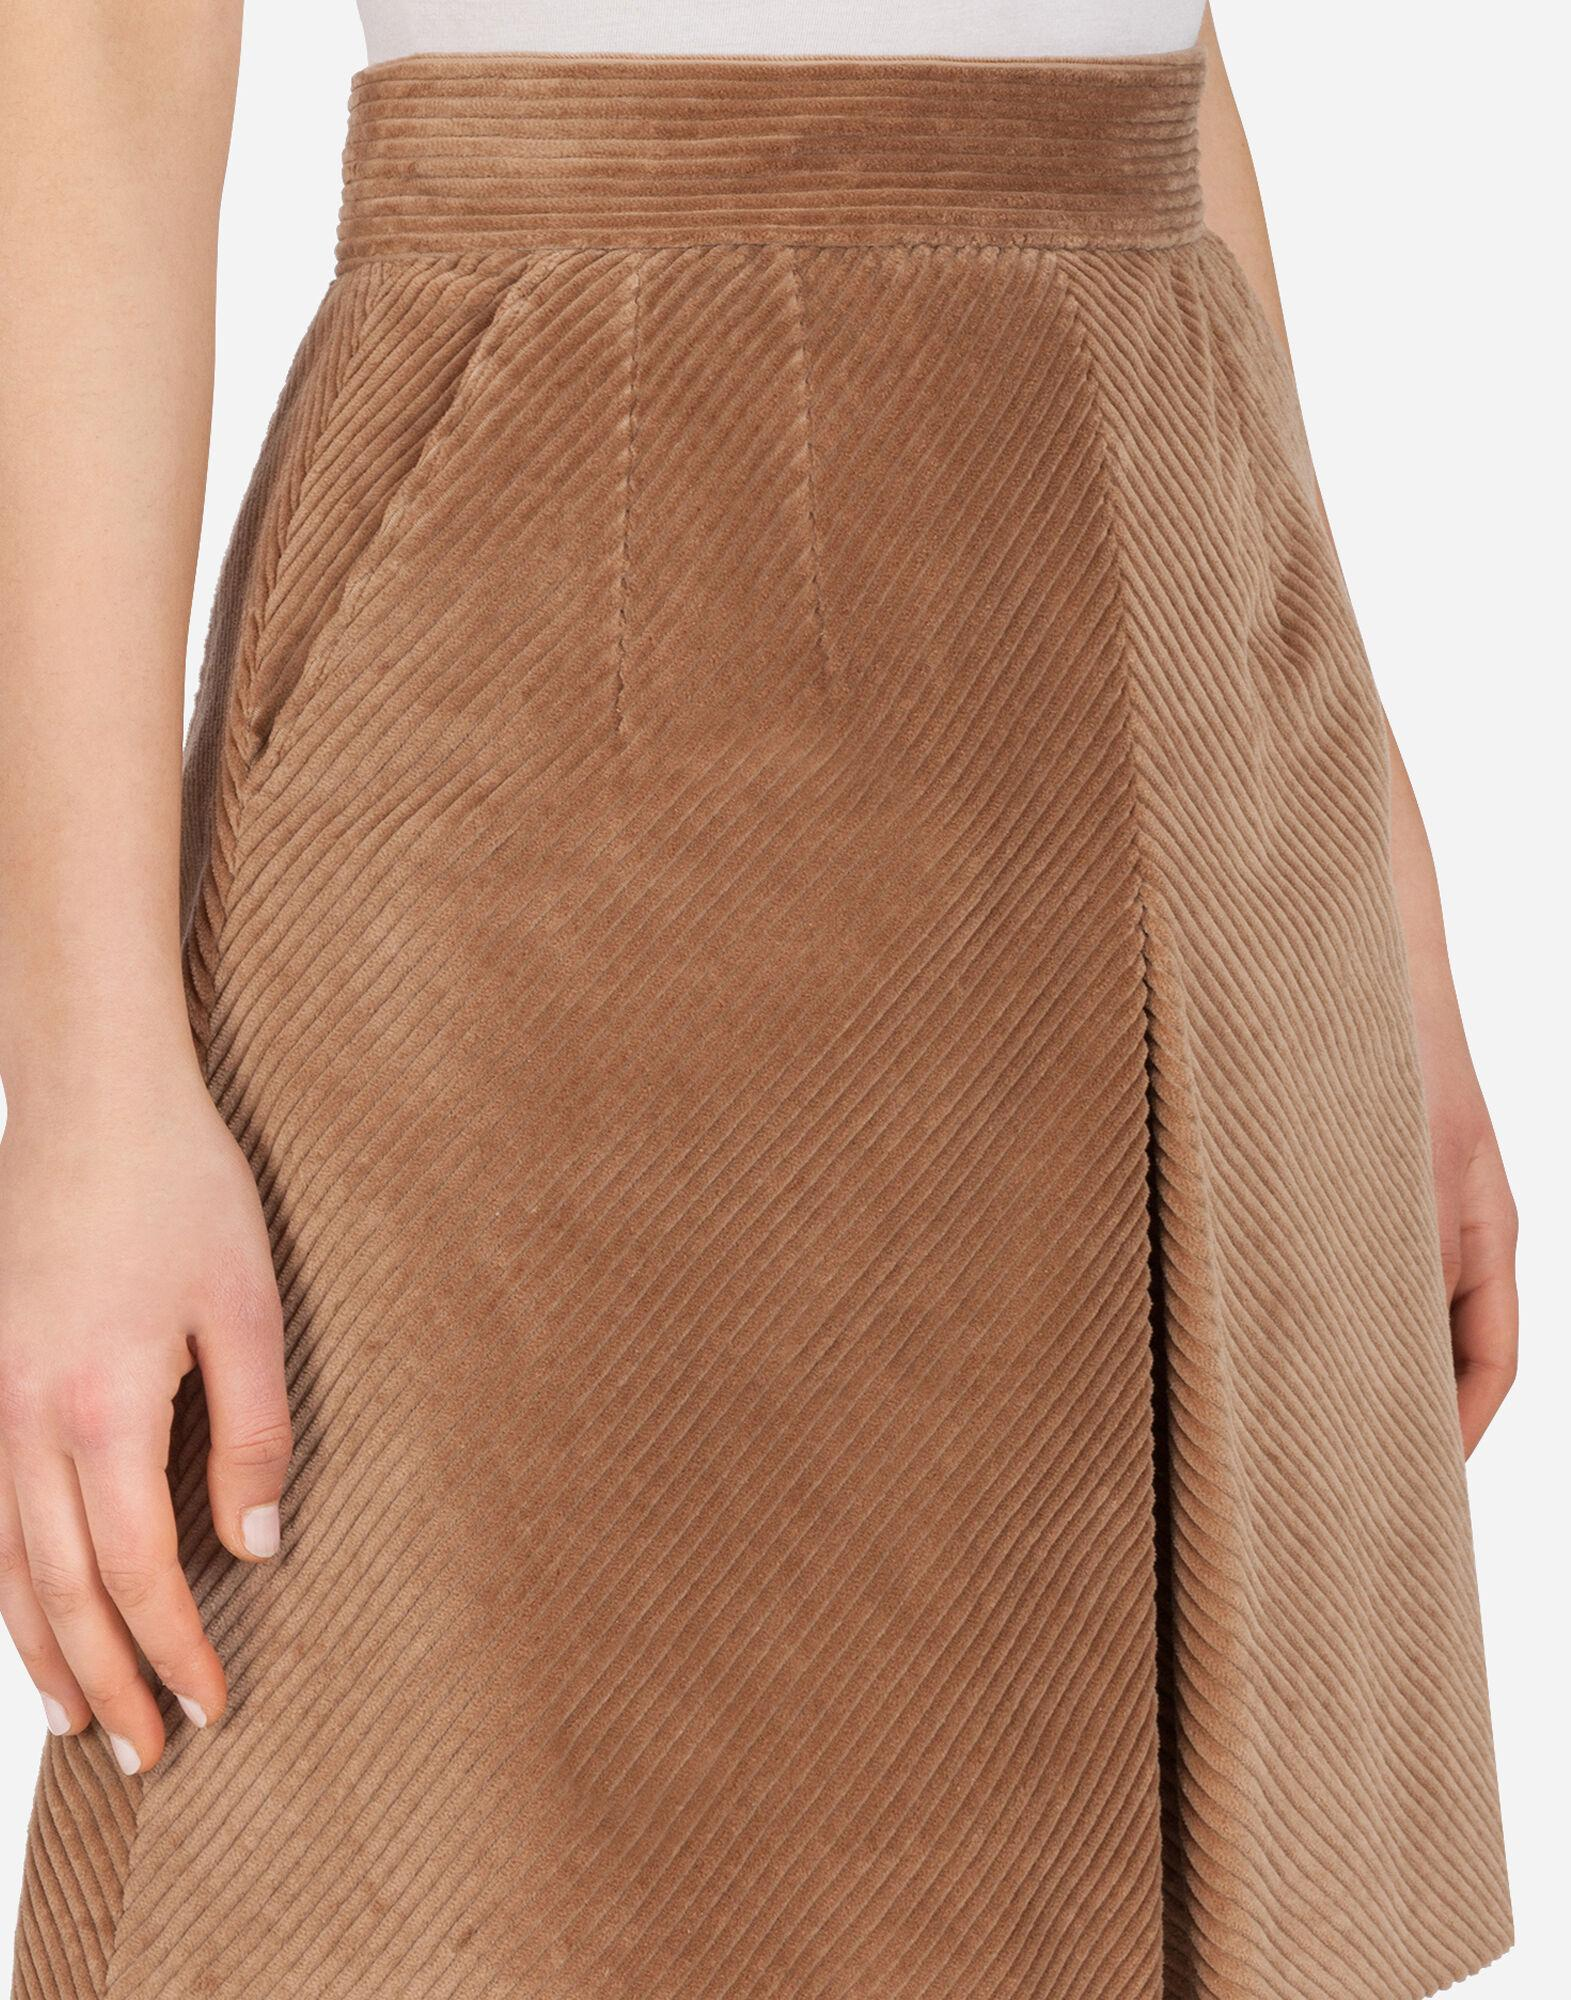 Short skirt in corduroy with kick pleat 4